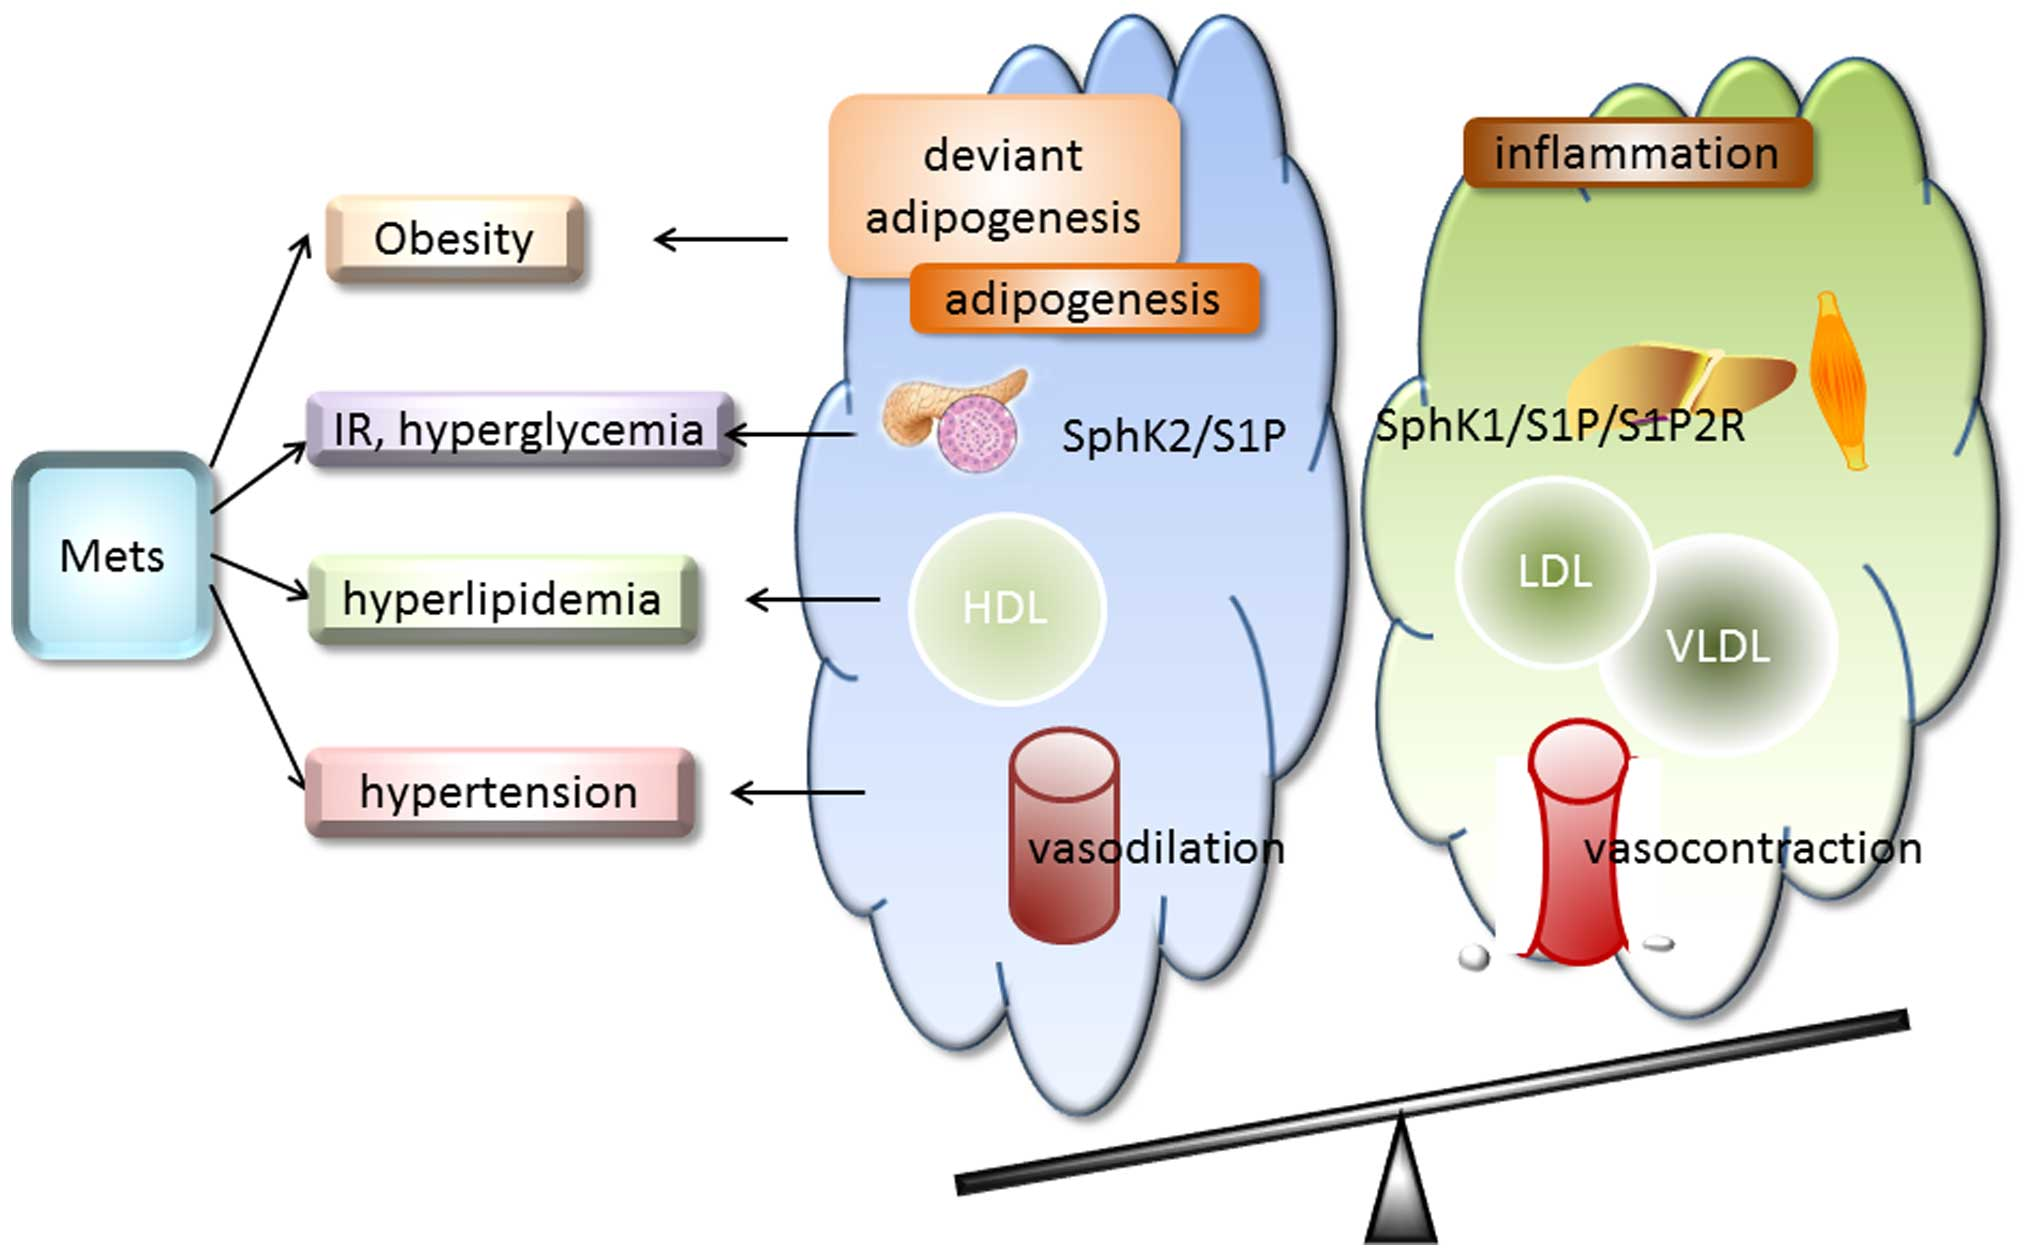 photos officielles 1dfcf 2d713 Sphingosine 1-phosphate in metabolic syndrome (Review)